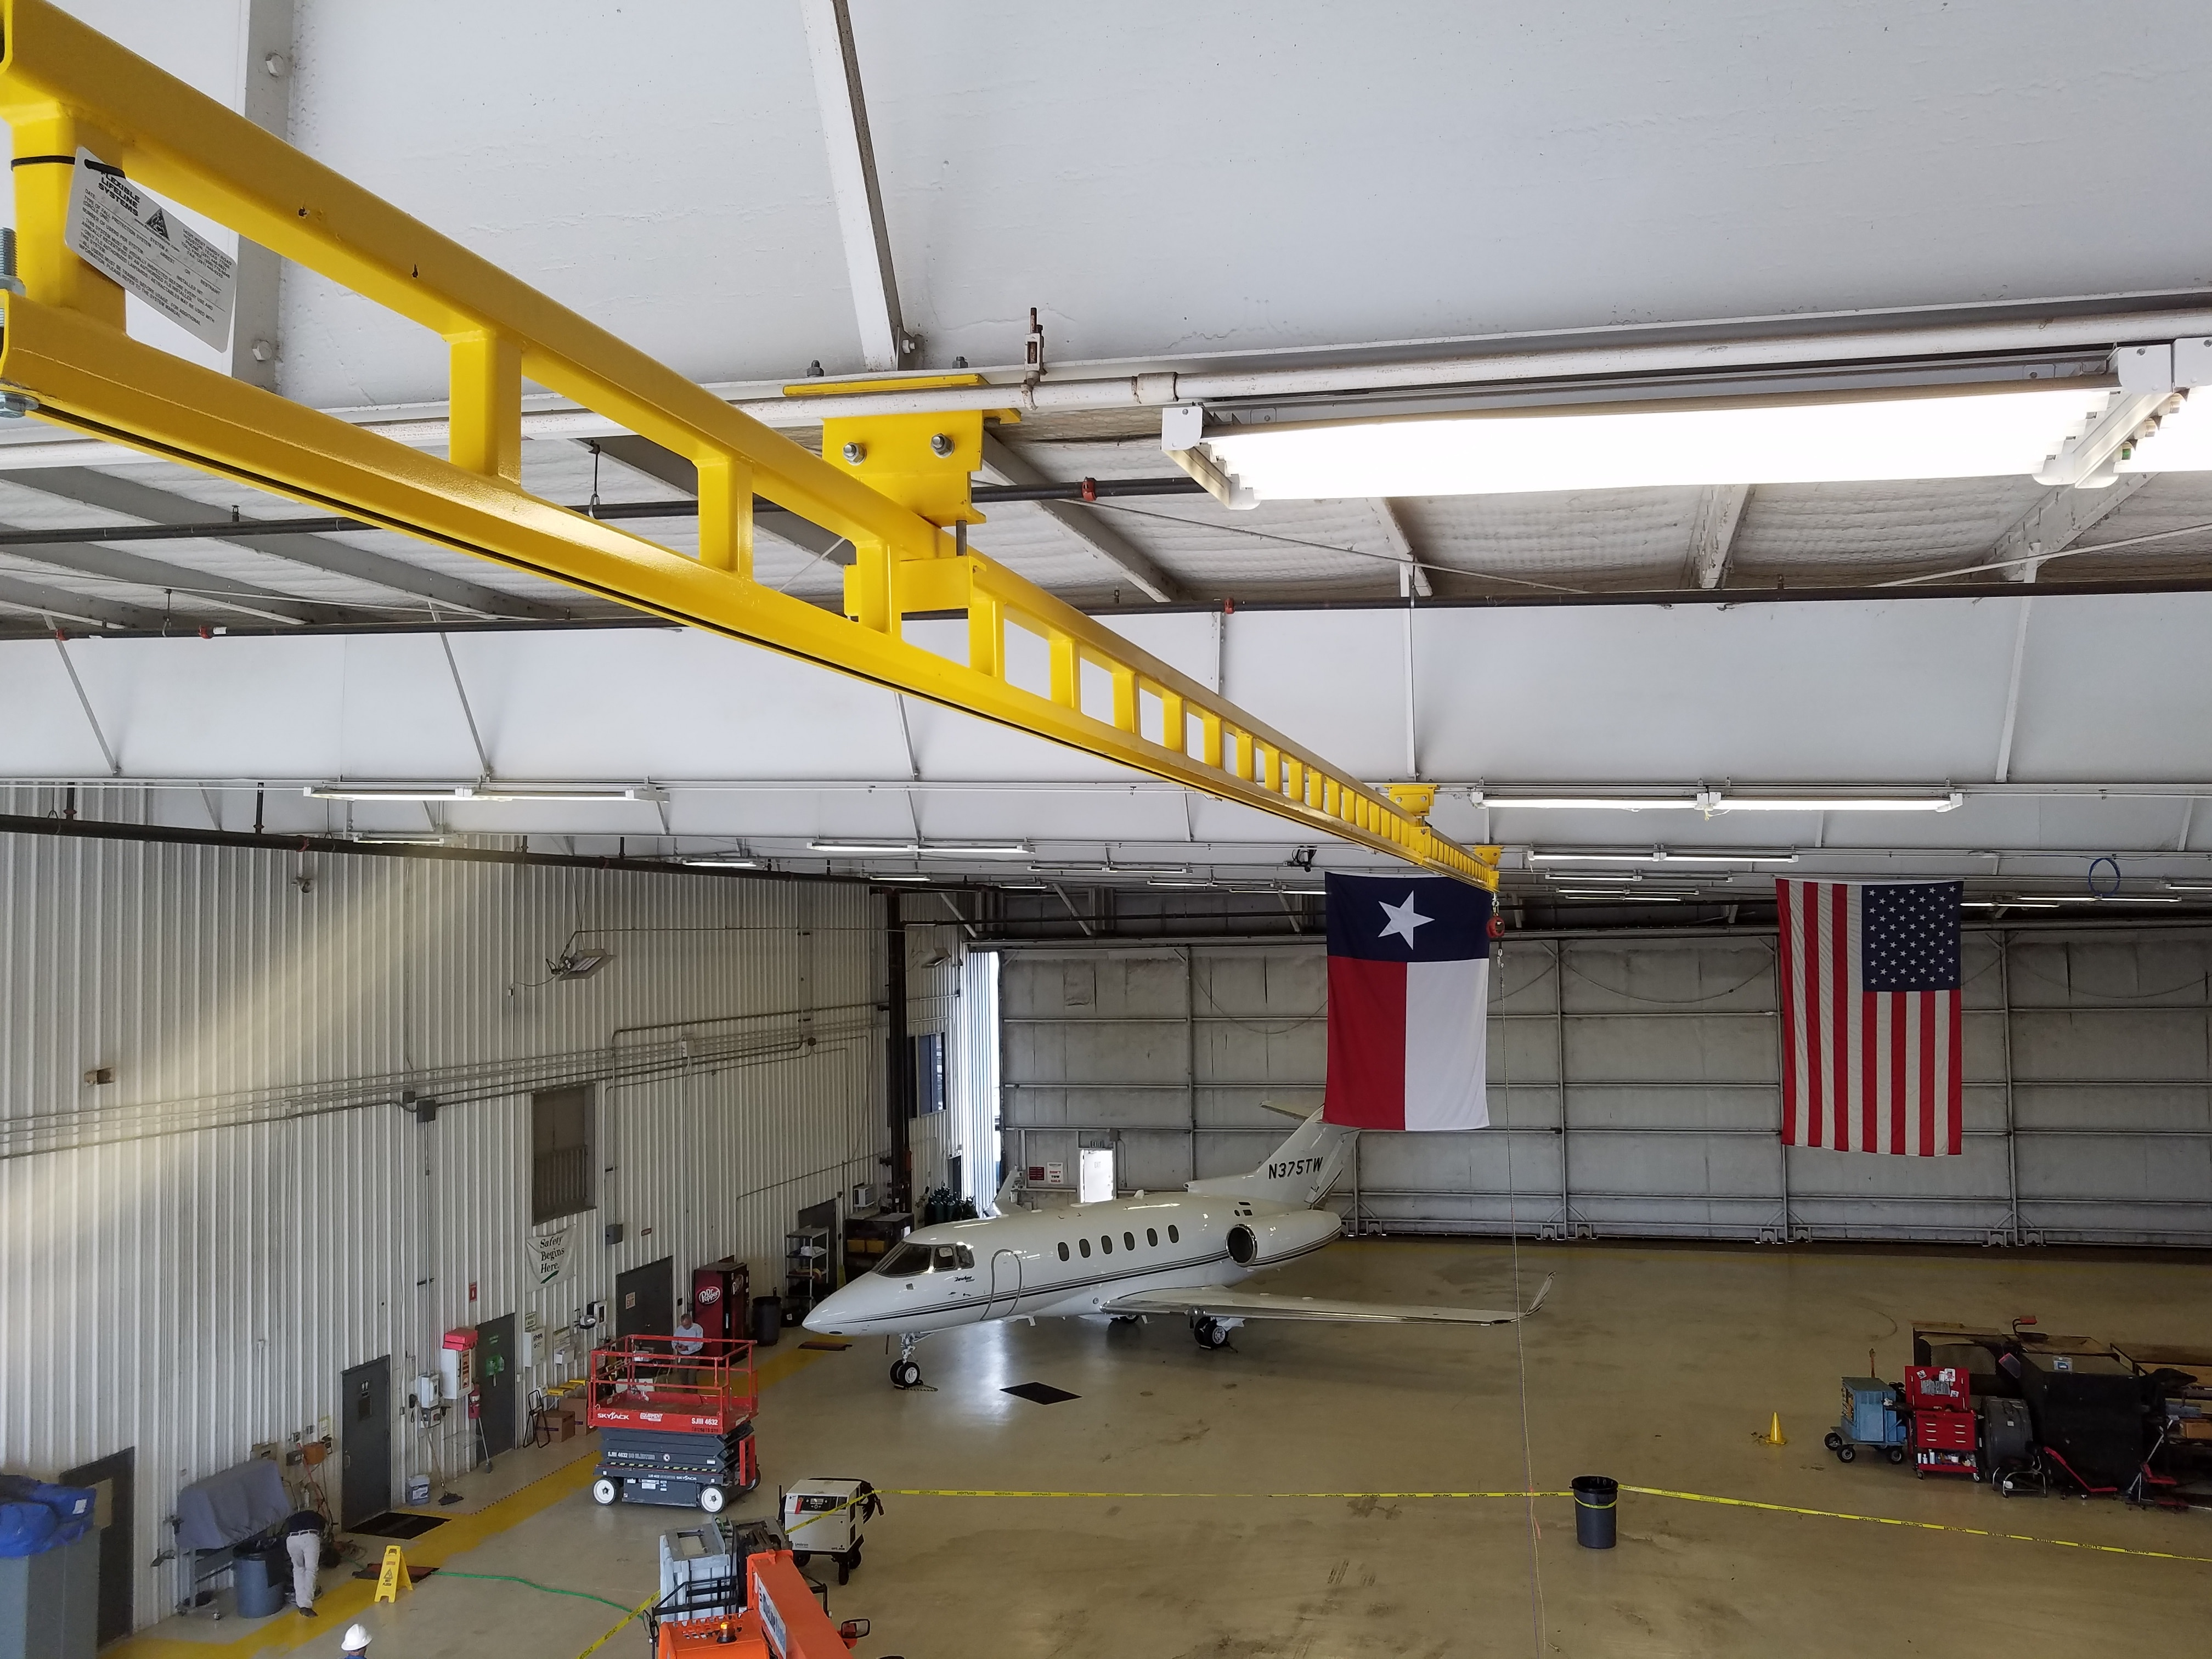 Aircraft Fall Protection Systems - Flexible Lifeline Systems